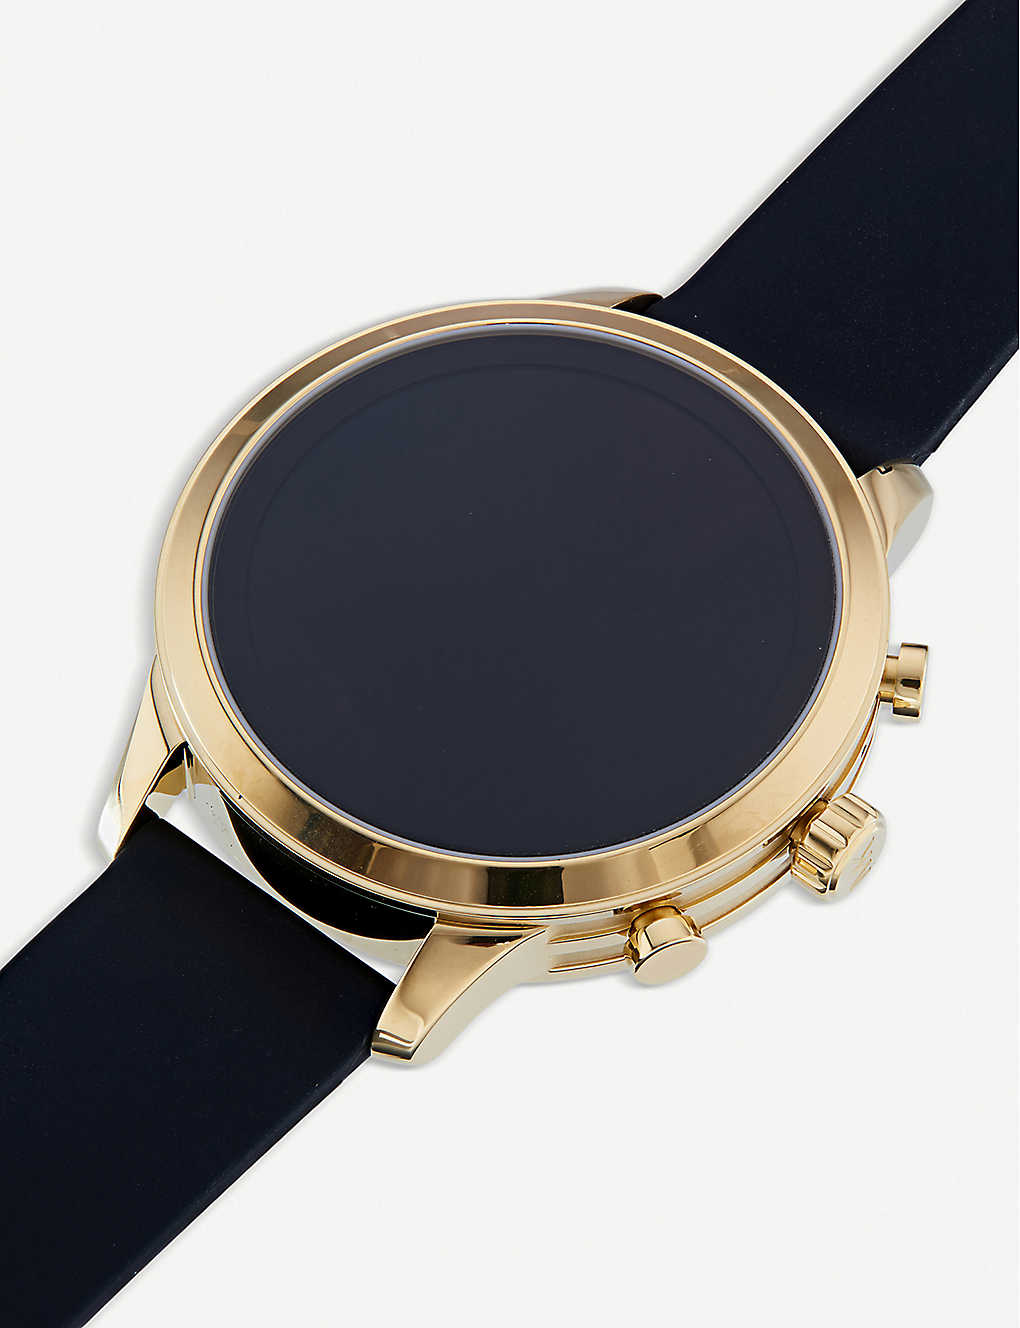 5c8c2f8f6ce9 MICHAEL KORS - MKT5053 Jetset gold-toned stainless steel smartwatch ...